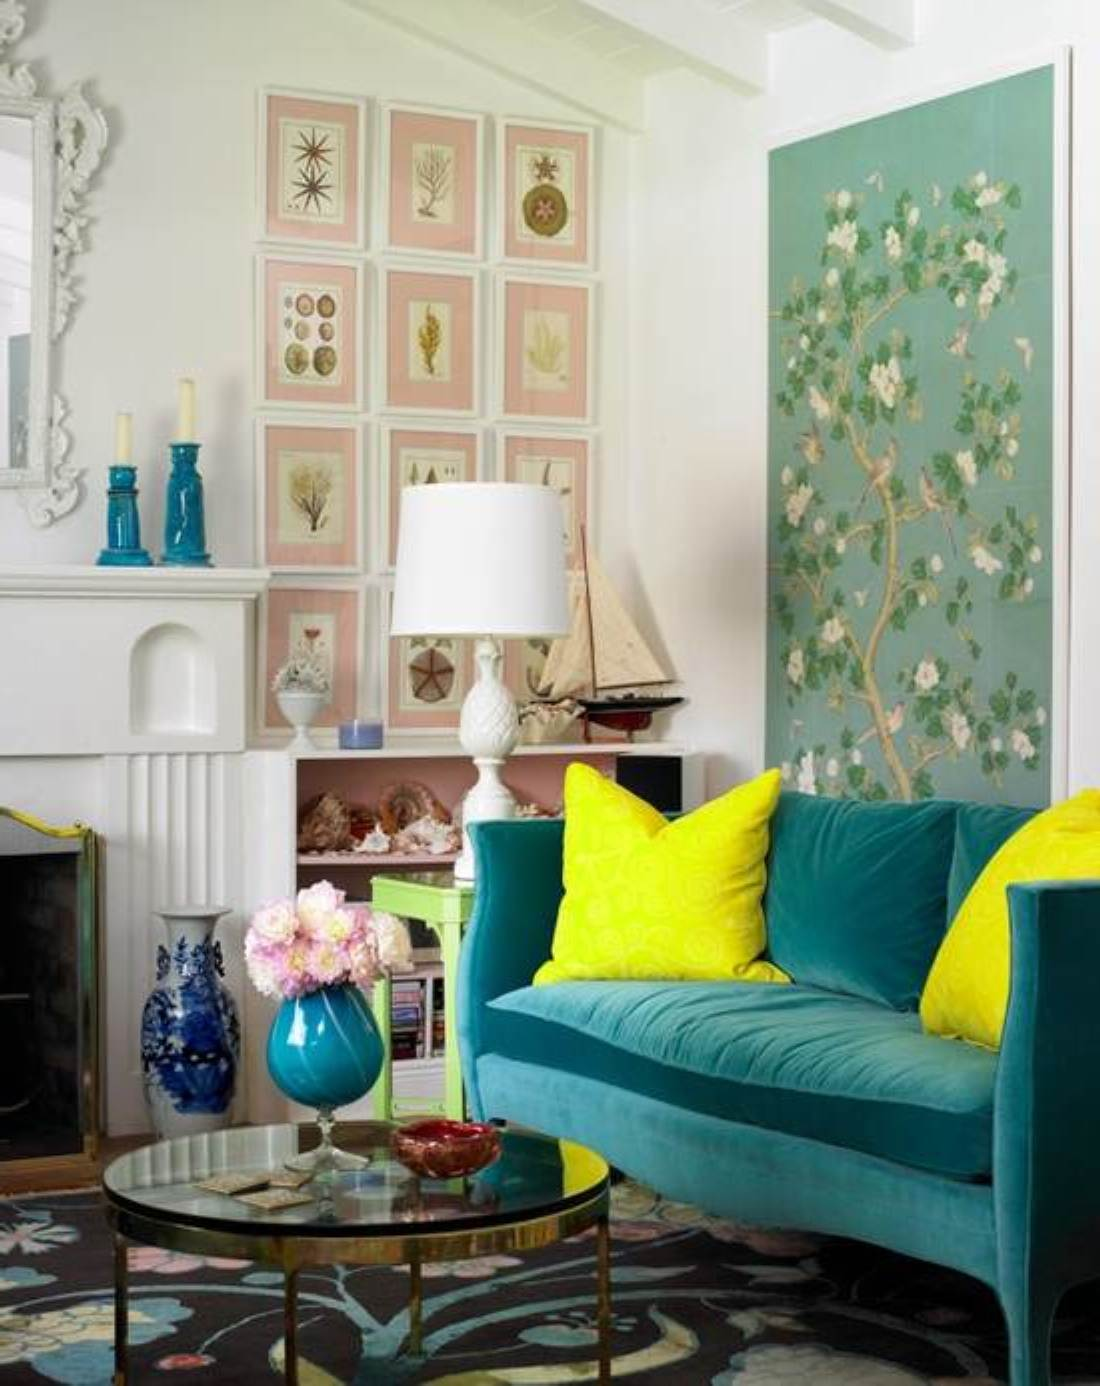 Some easy rules of small space decorating live diy ideas for Small living room decor